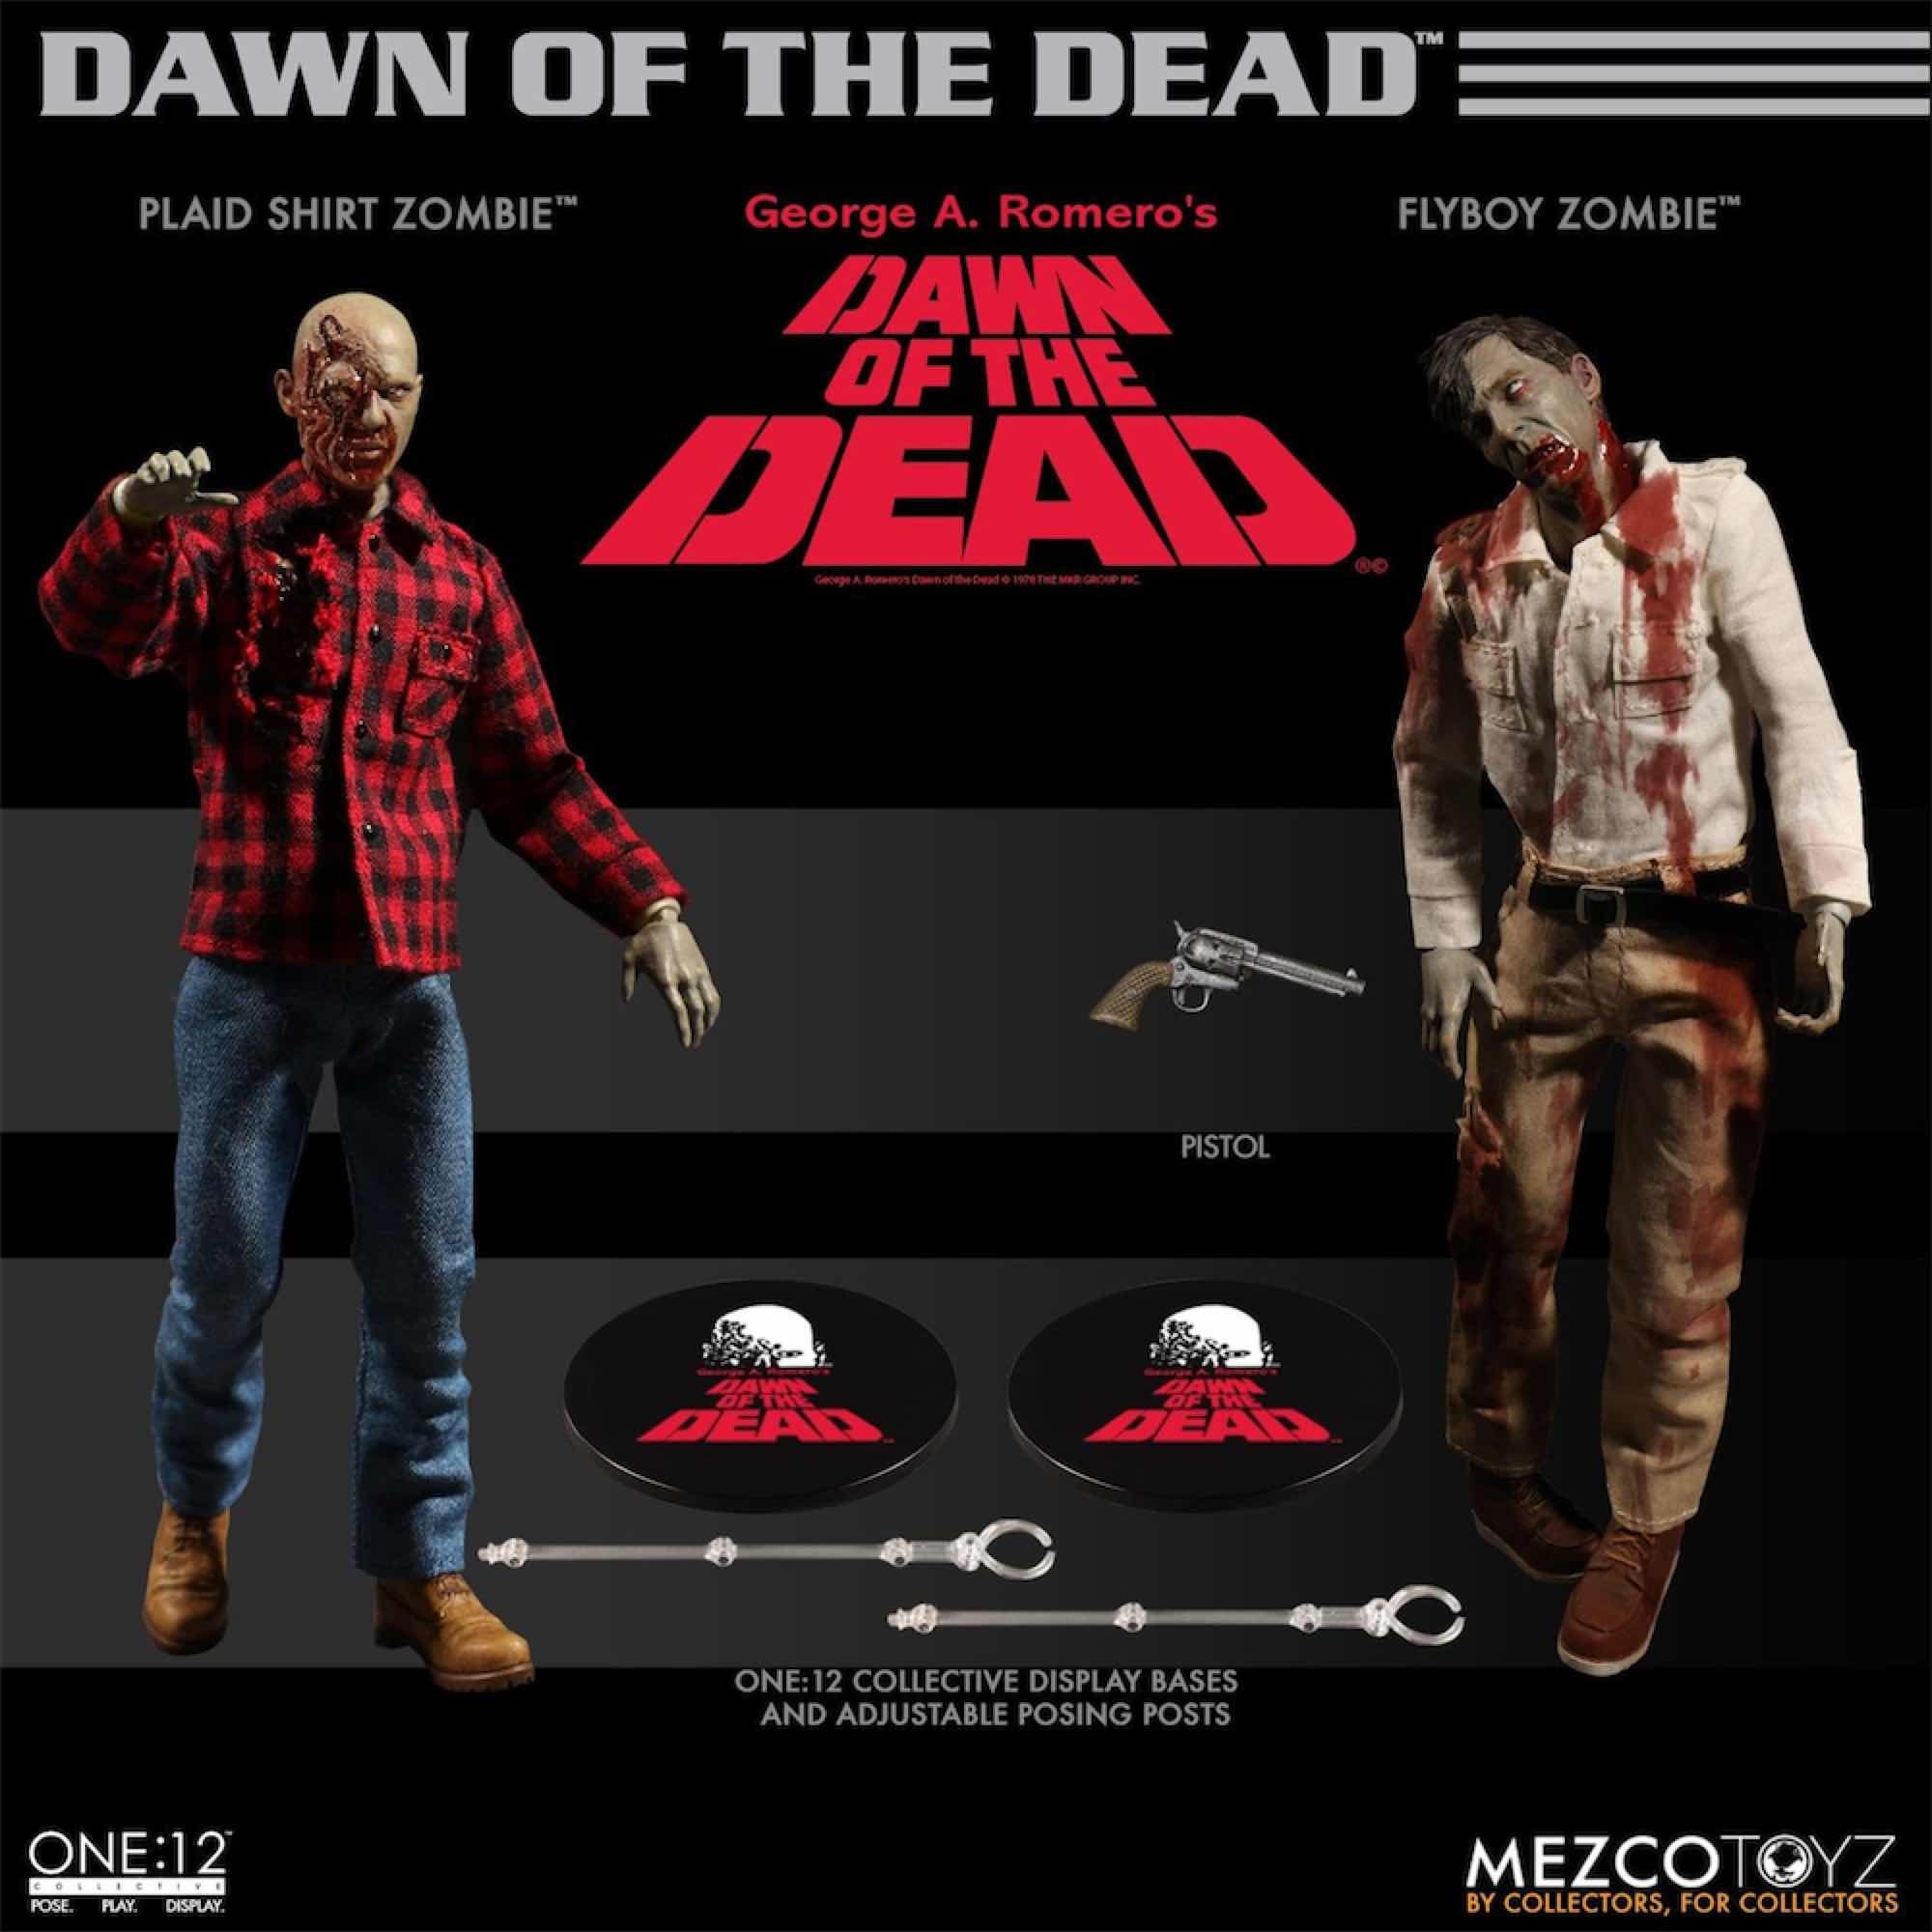 FLYBOY & PLAID SHIRT ZOMBIE SET 2 FIGURAS 17 CM DAWN OF THE DEAD THE ONE:12 COLLECTIVE